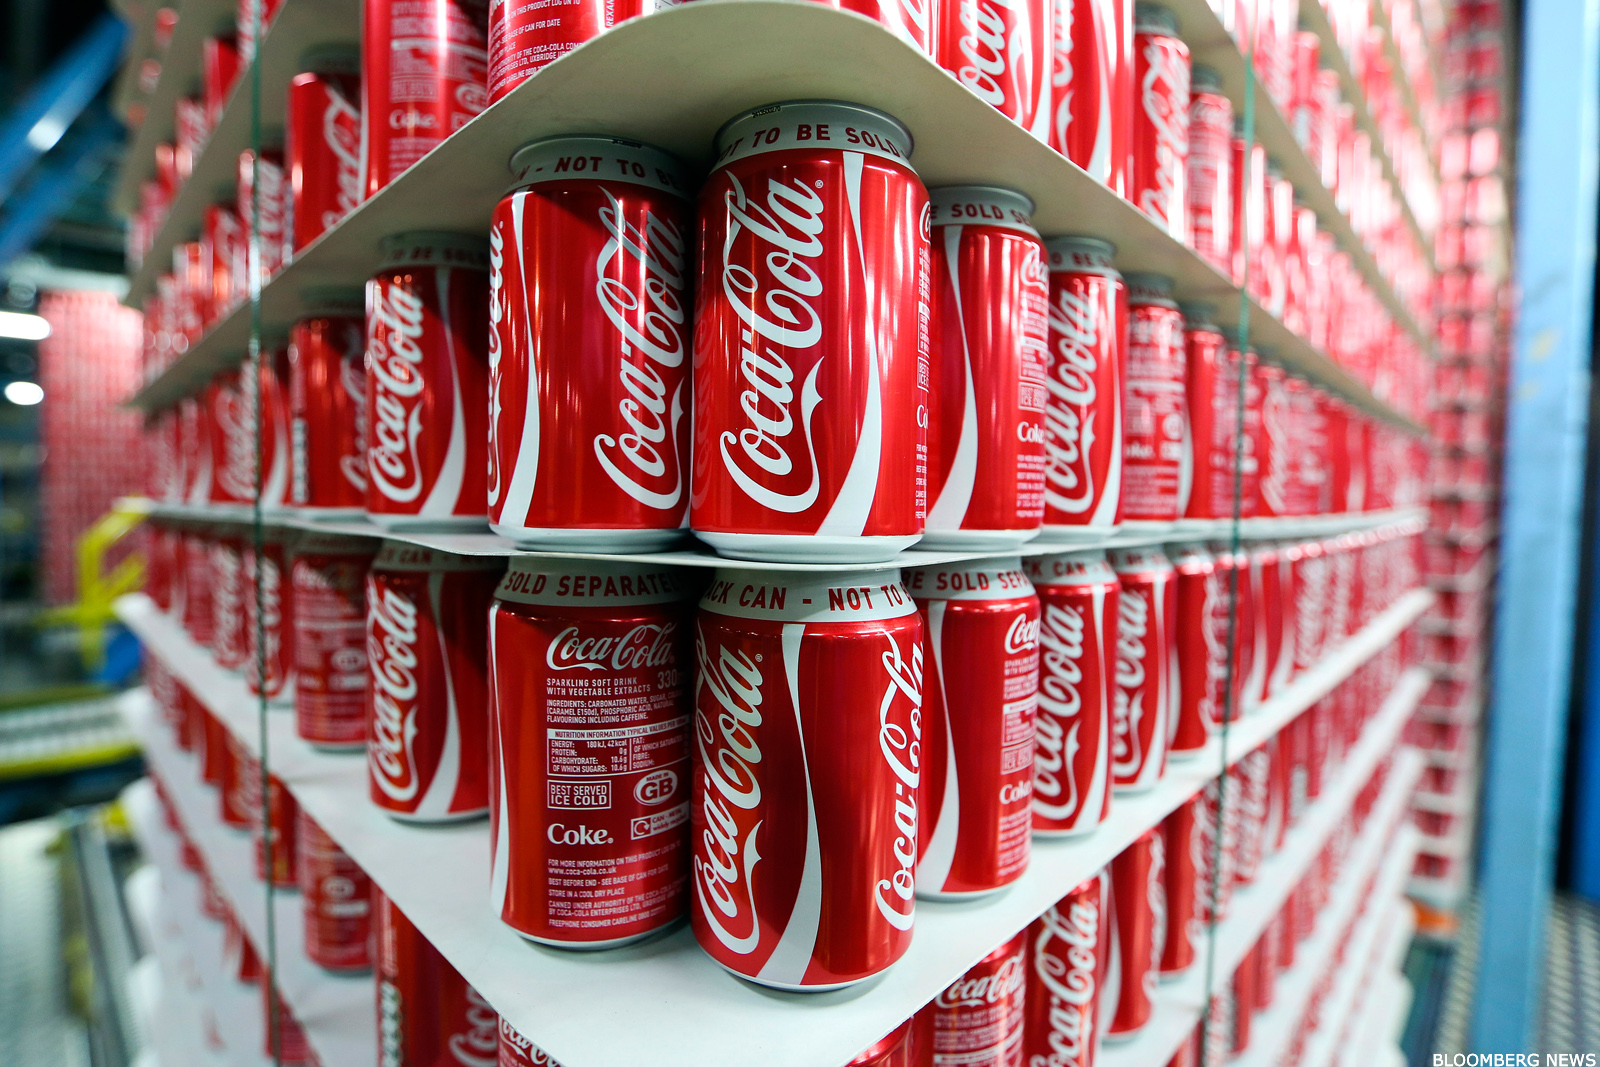 pension funds of coca cola and View current and historical demographic and financial information for the coca-cola company pension plan and other pensions.